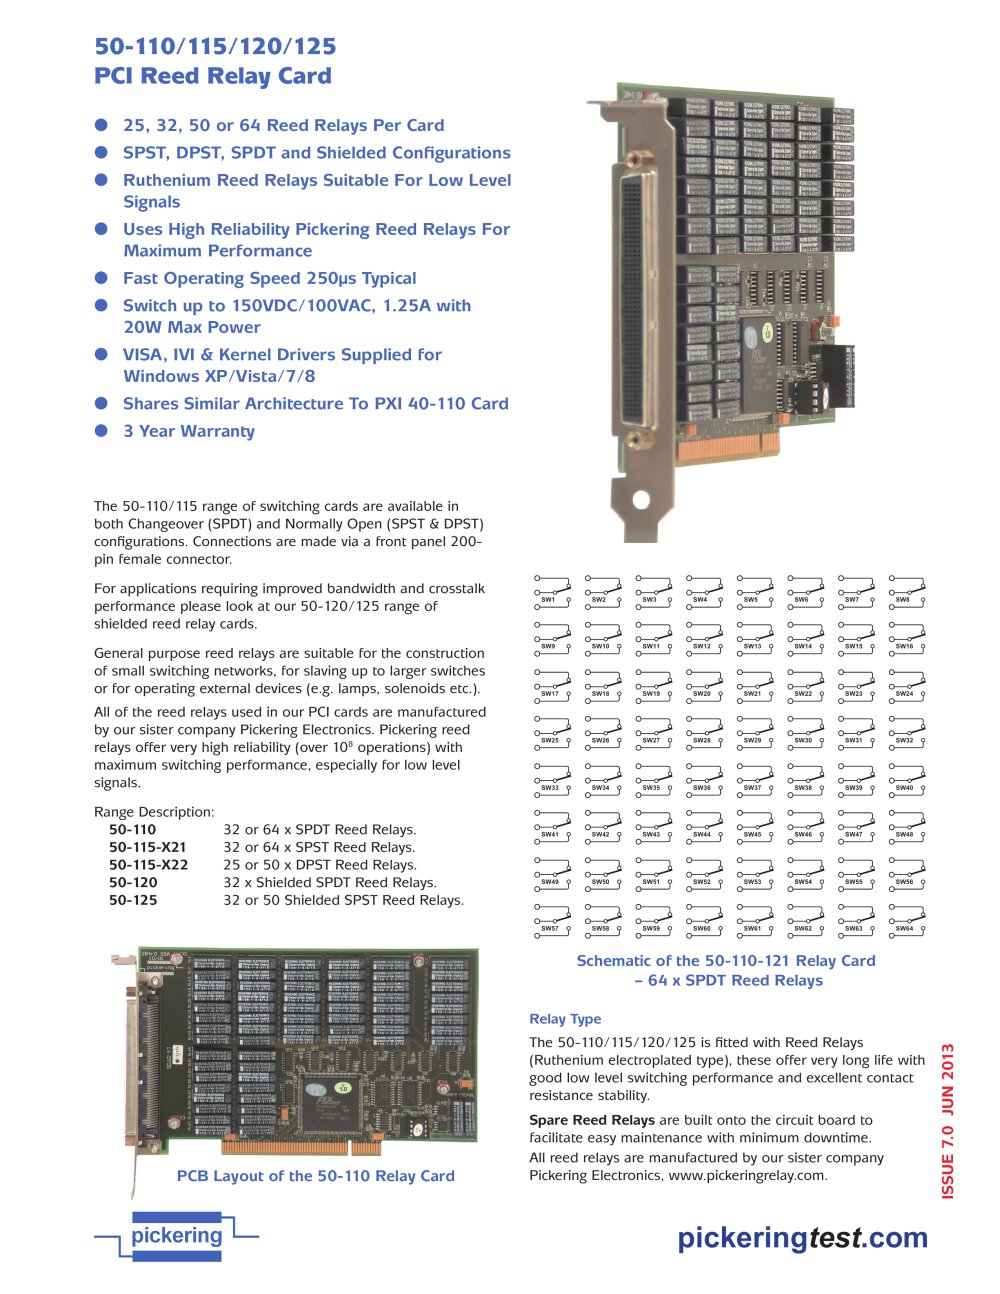 Pci Matrix Card 50 510 511 512 513 Pickering Test Pdf Catalogue Spst Reed Relay Wiring Diagram 1 2 Pages